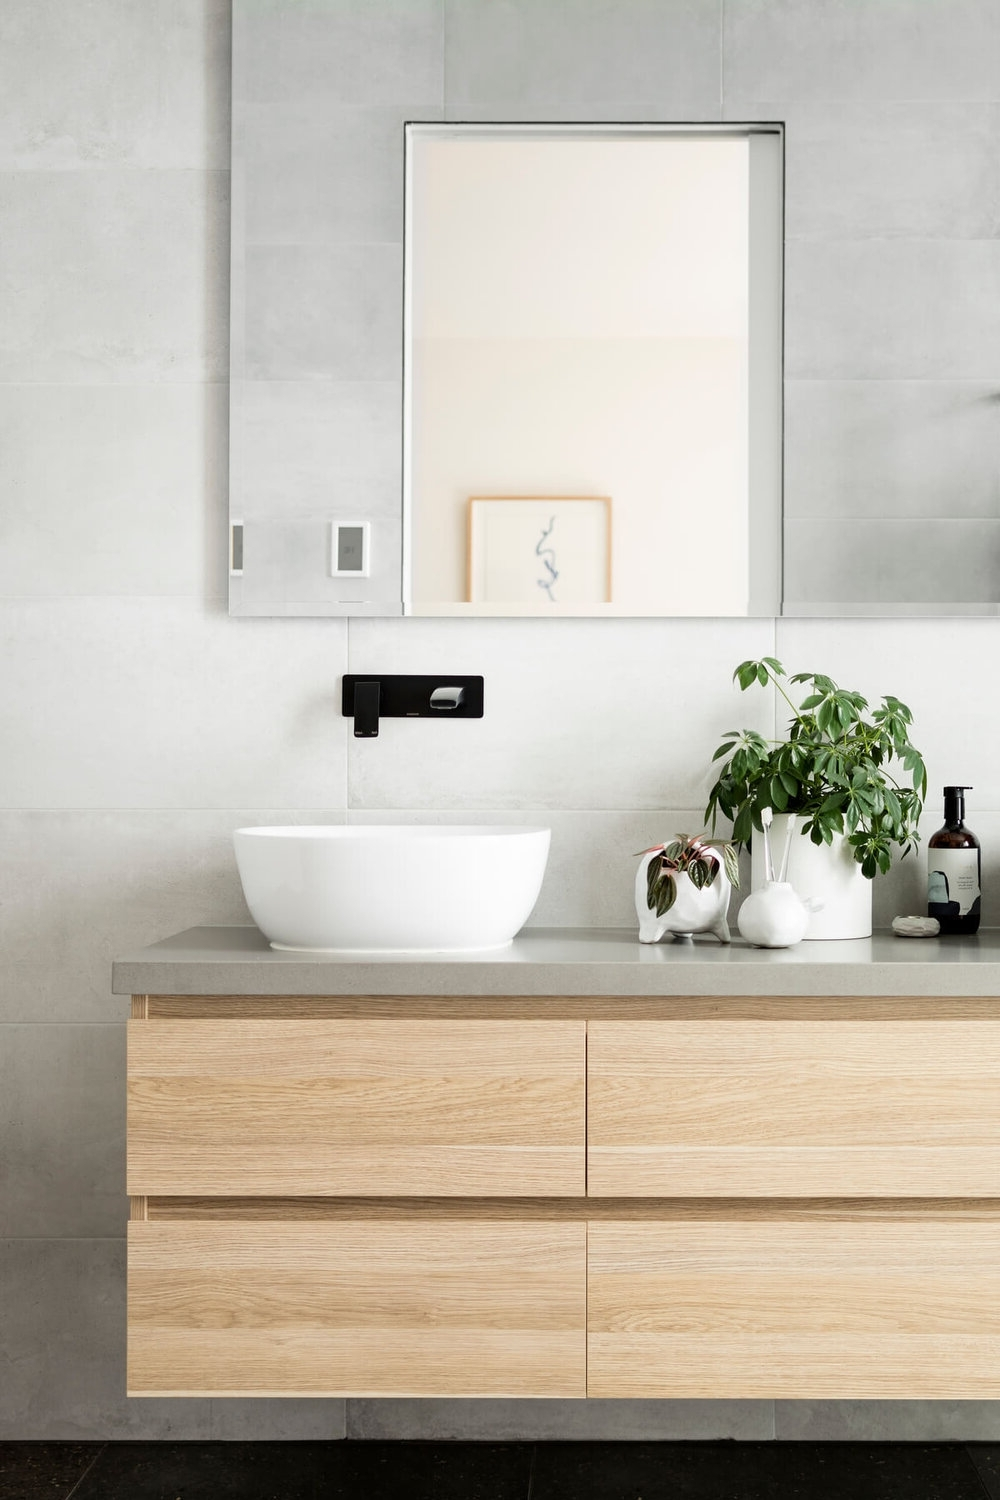 Timber Vanities You'Ll Adore: This Is How To Design Them 40+ Ingrain Designs Bathroom Vanity Inspirations